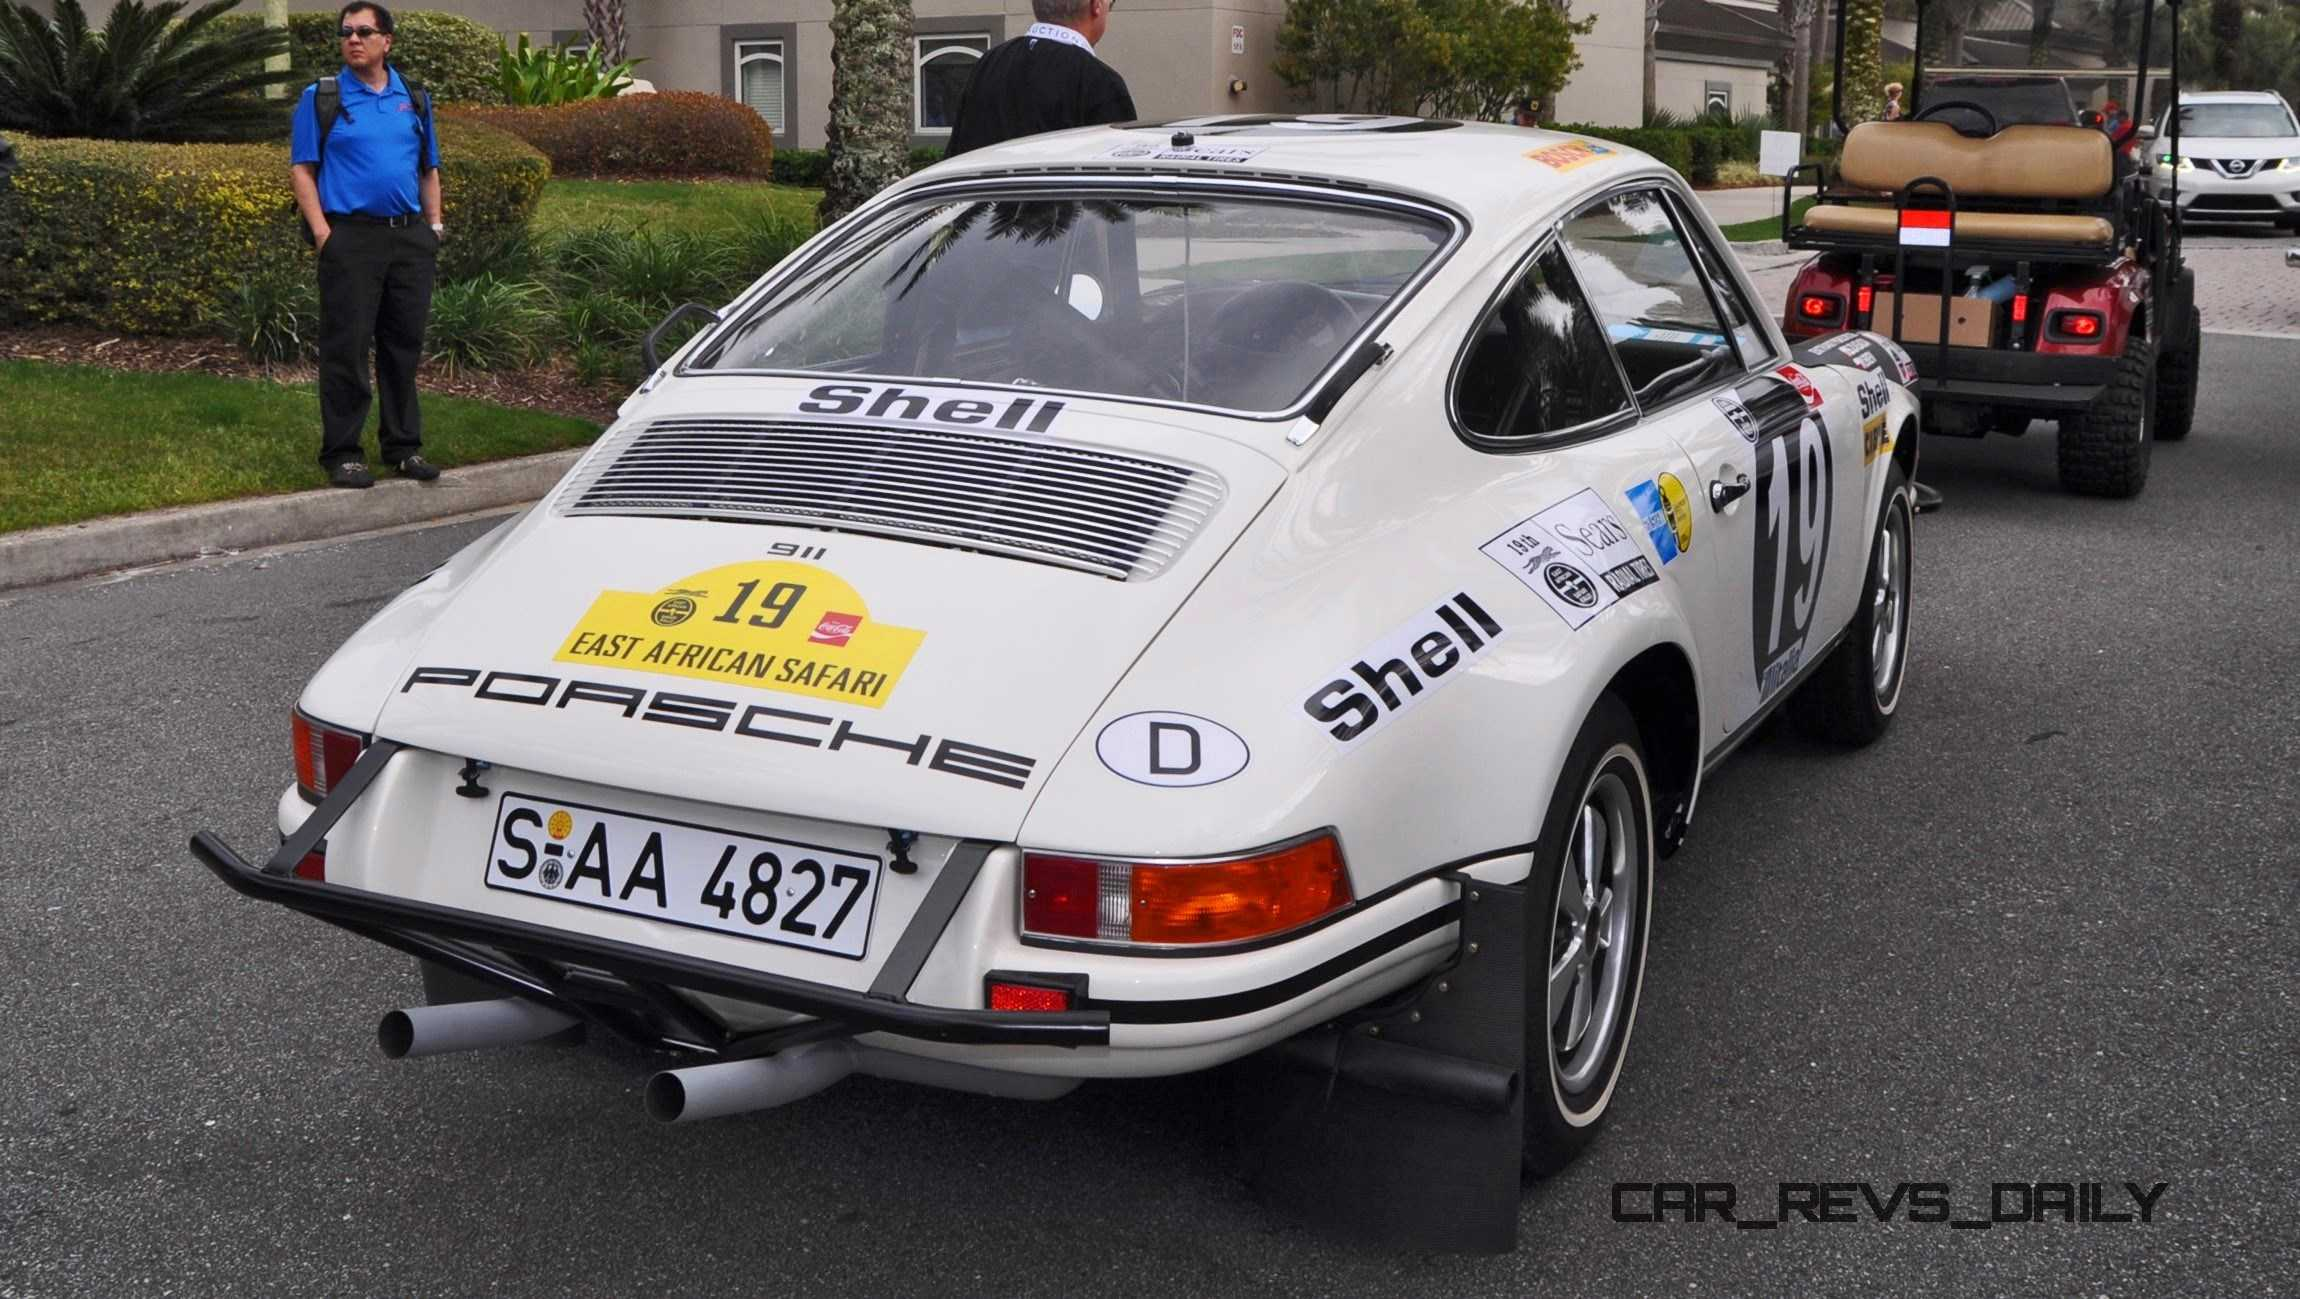 1971 Porsche 911 East African Rally Car